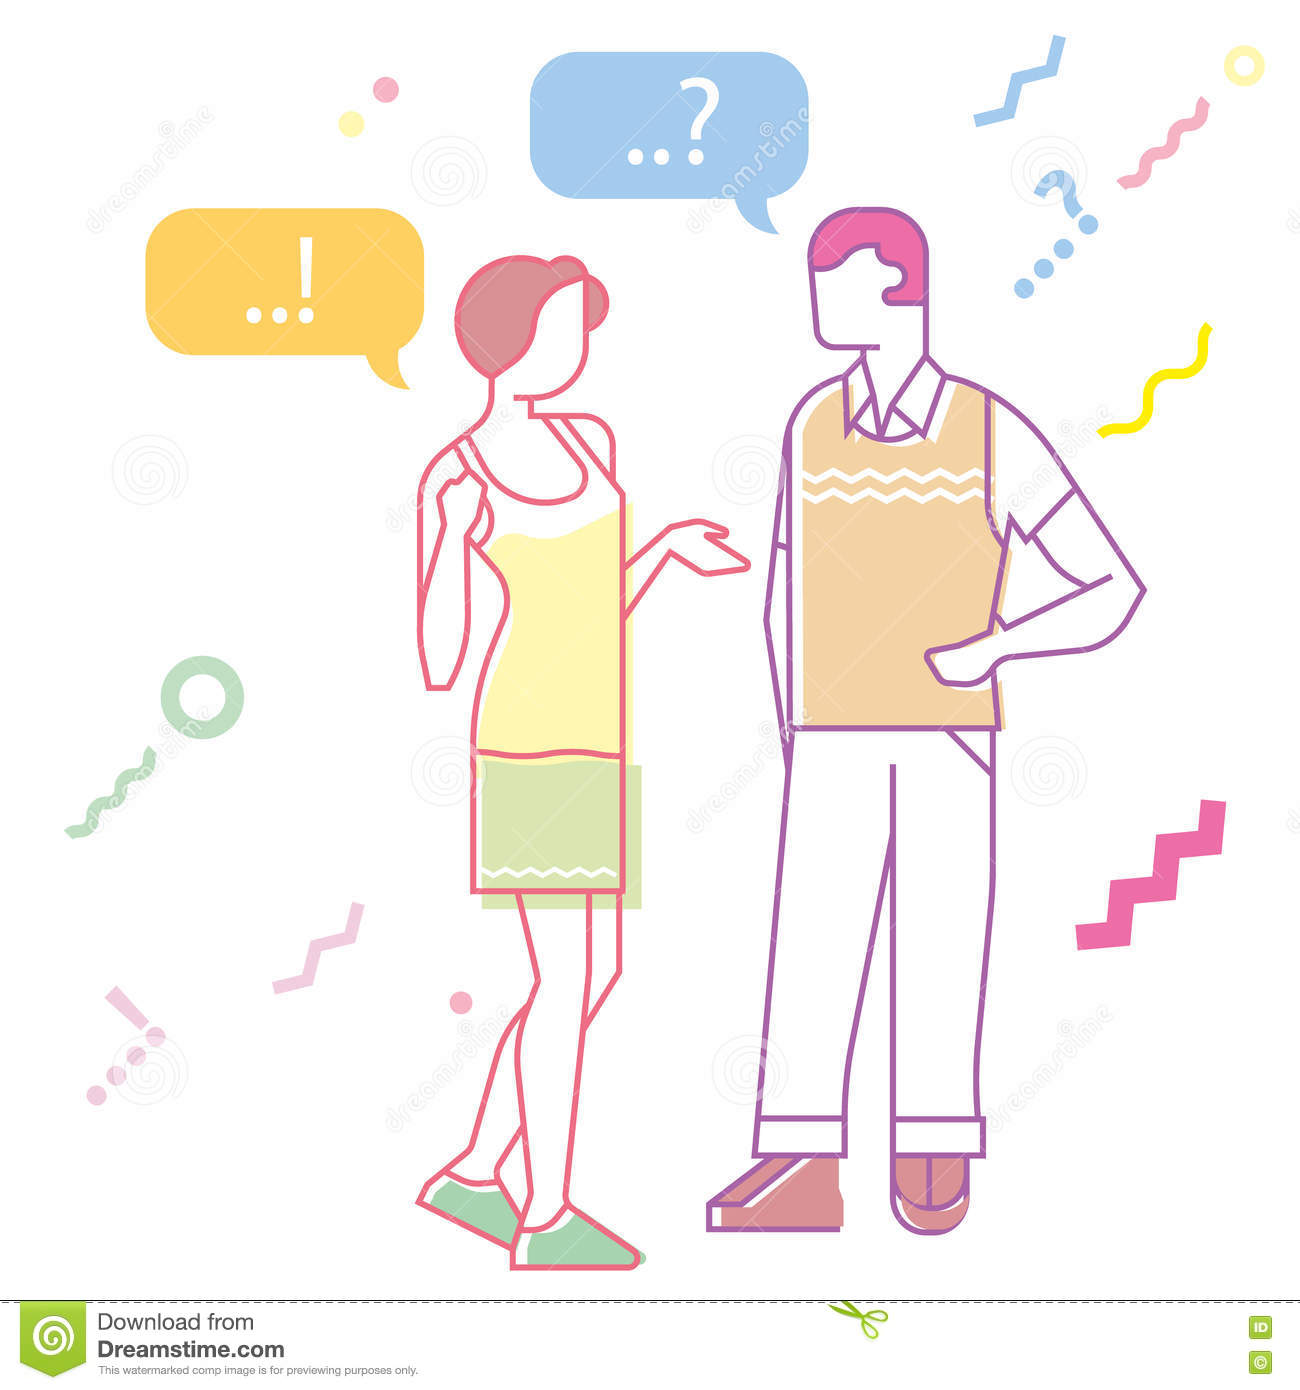 essay about friendship between man and woman Friendship can exist between the same sex man-man, woman-woman or opposite sex man  we will write a custom essay sample on friends and friendship.